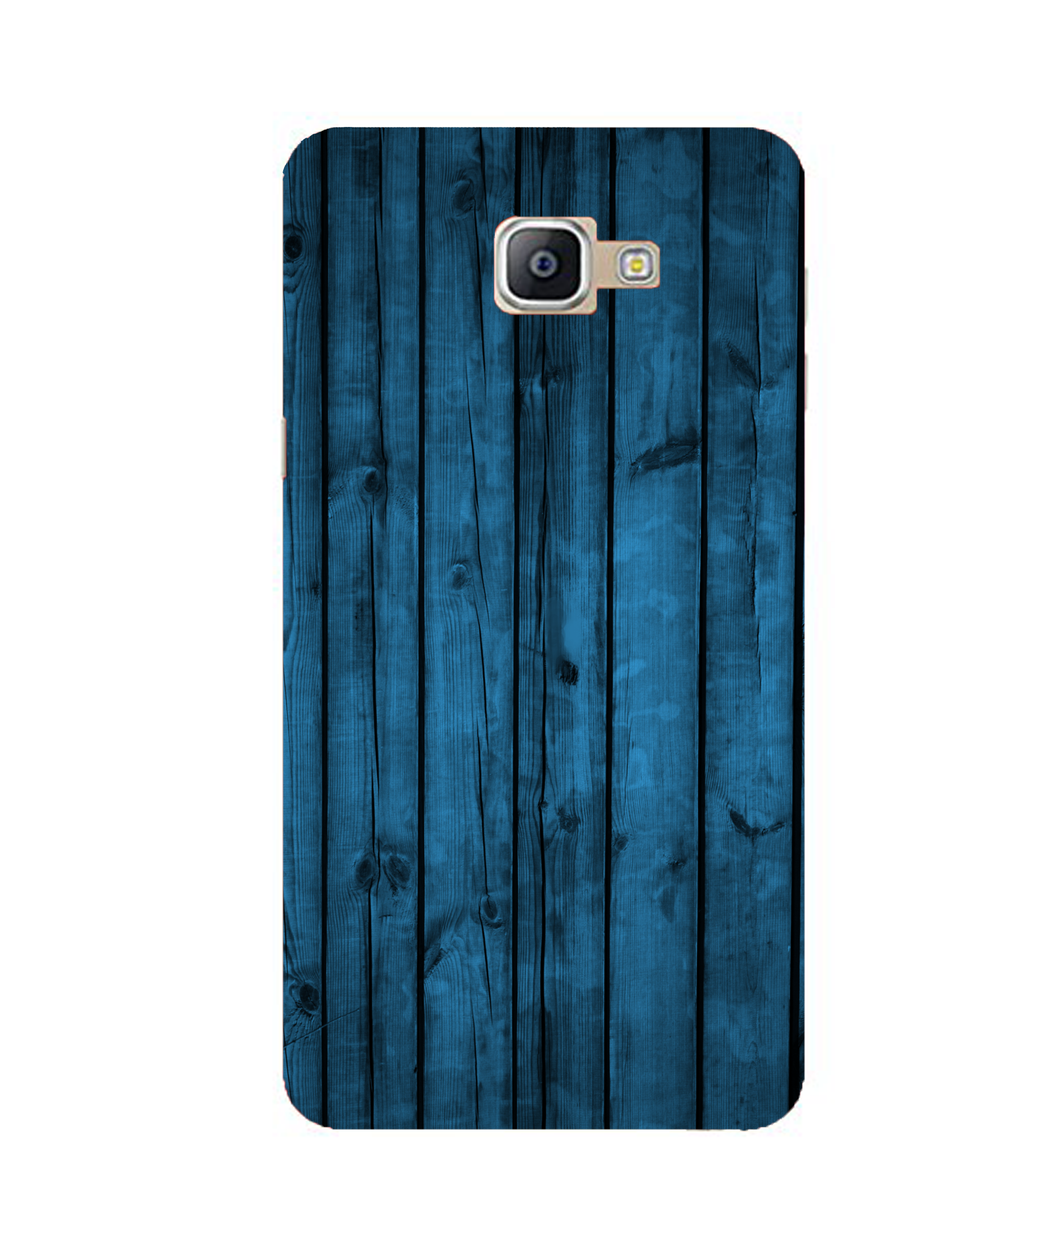 Samsung A9 Pro Bluewood mobile cover